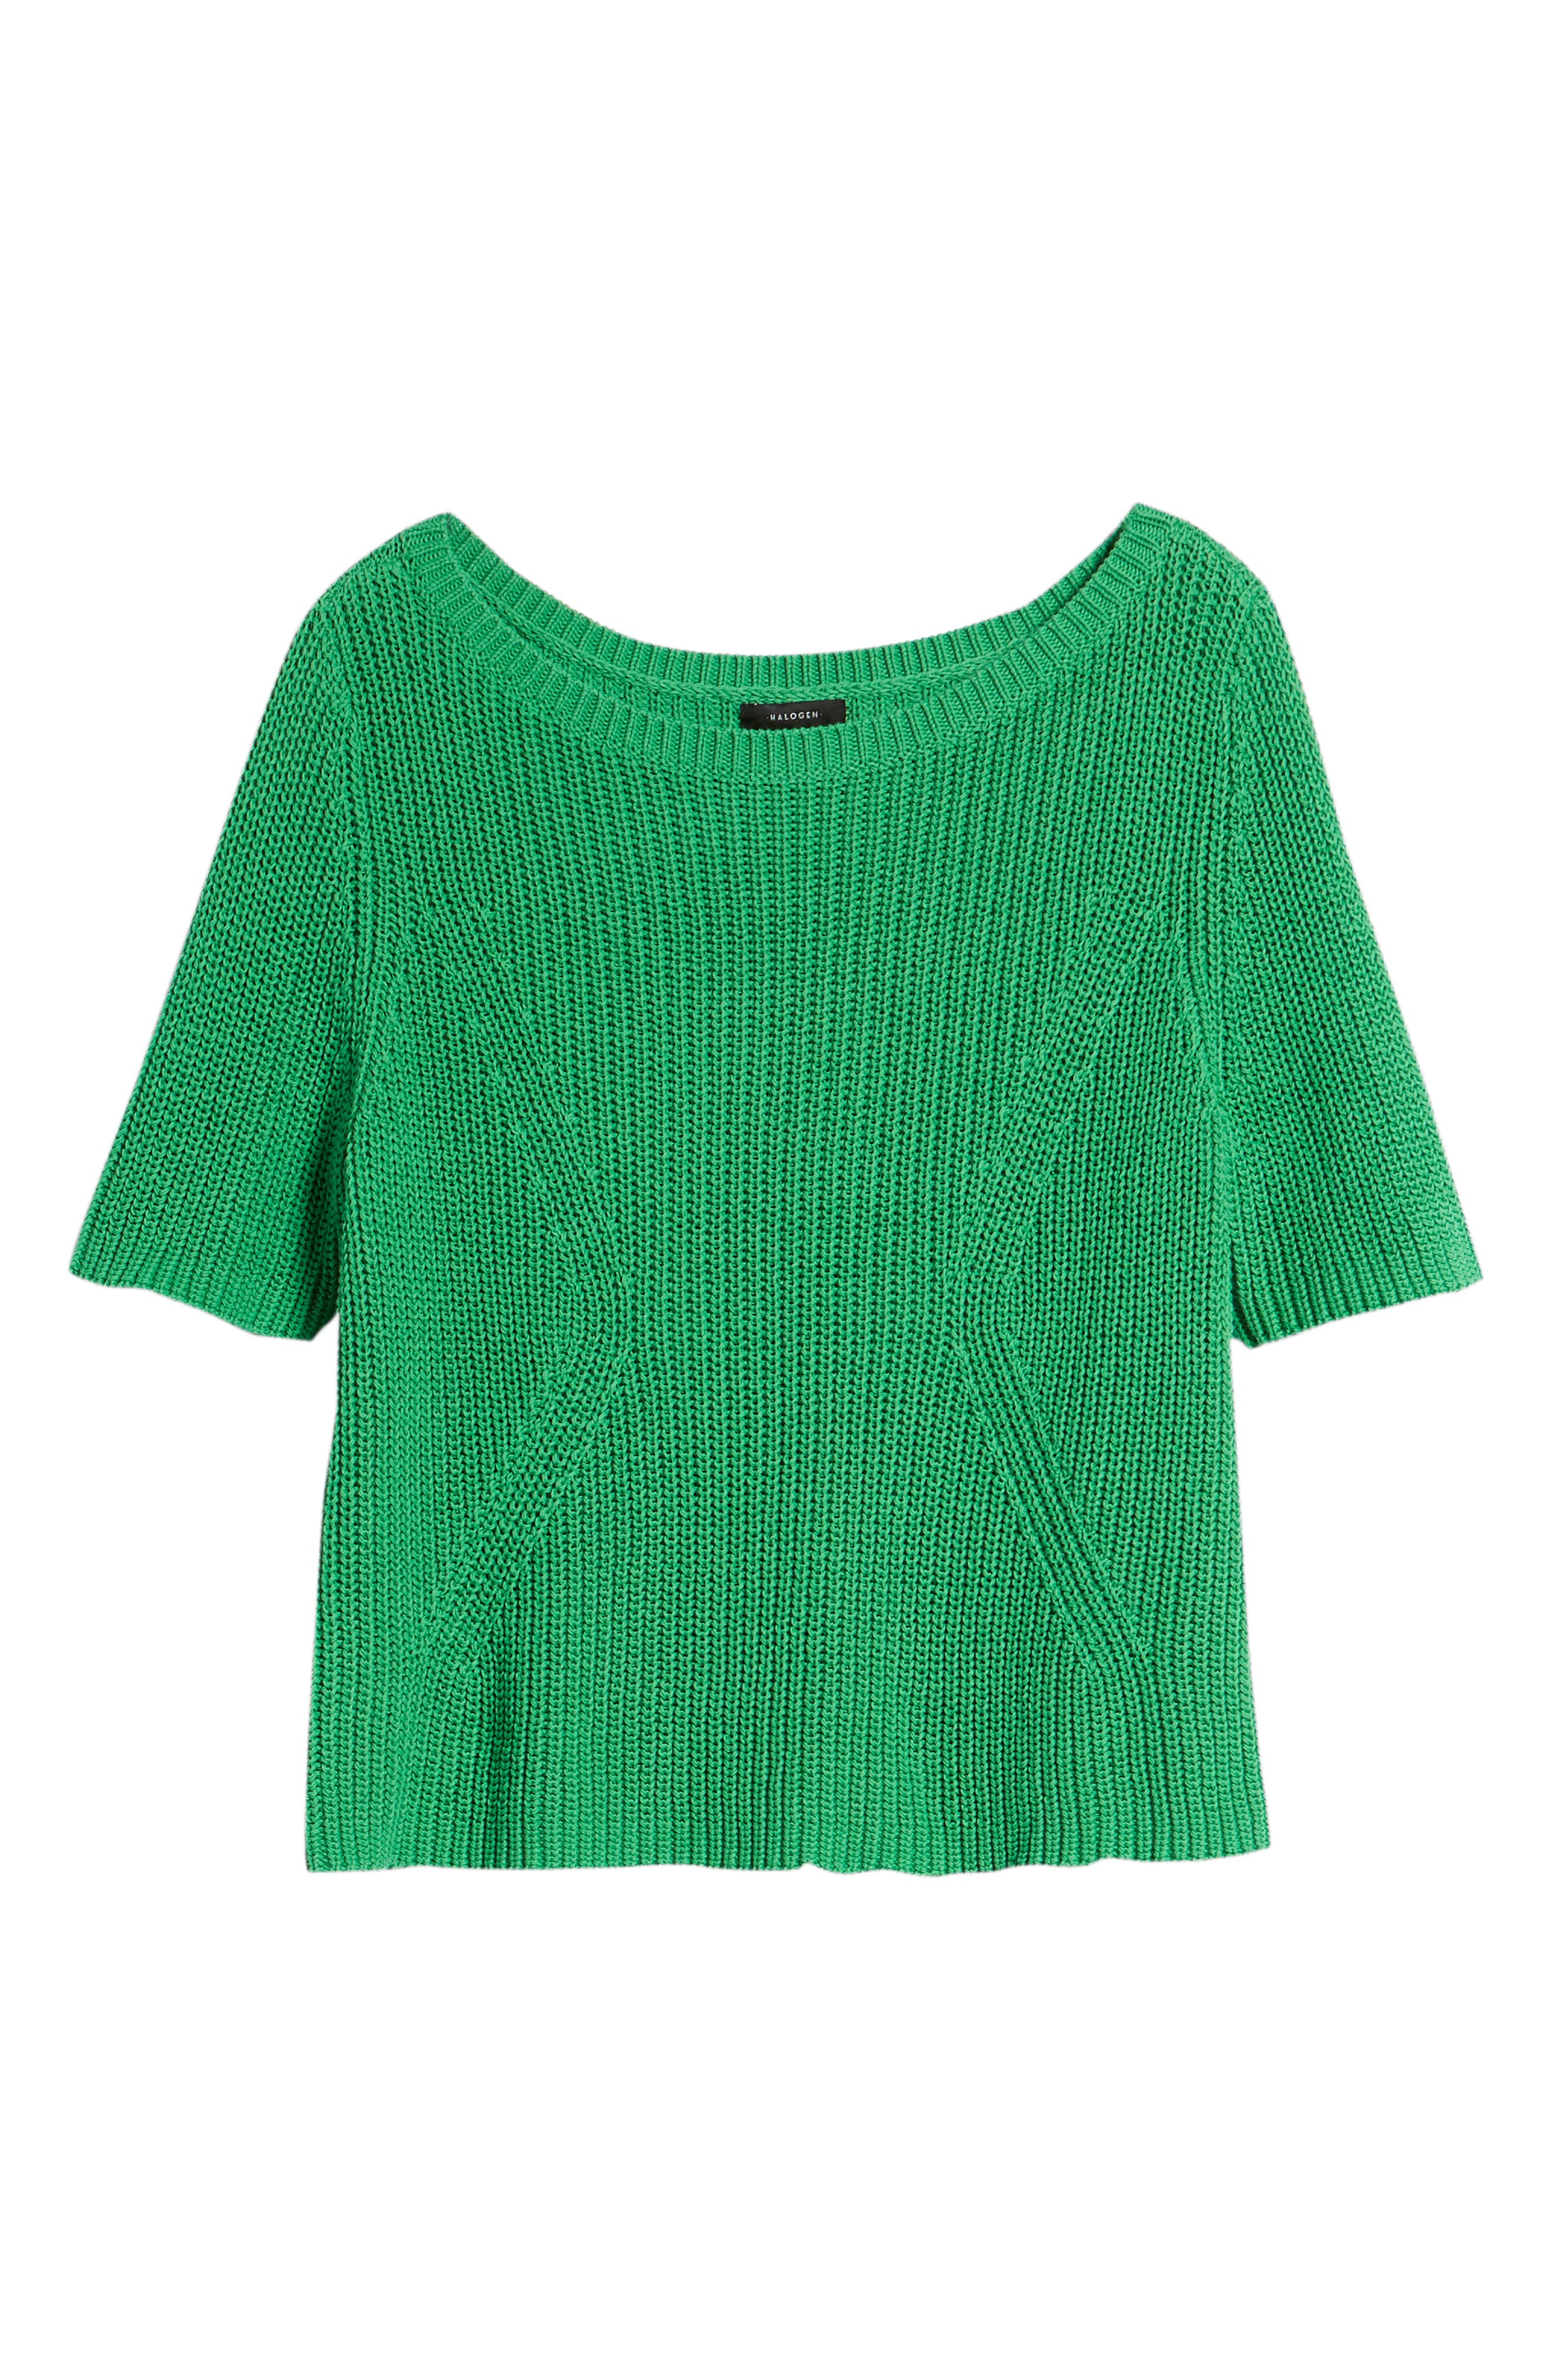 Shaker Stitch Cotton Sweater,                             Alternate thumbnail 6, color,                             Green Kelly